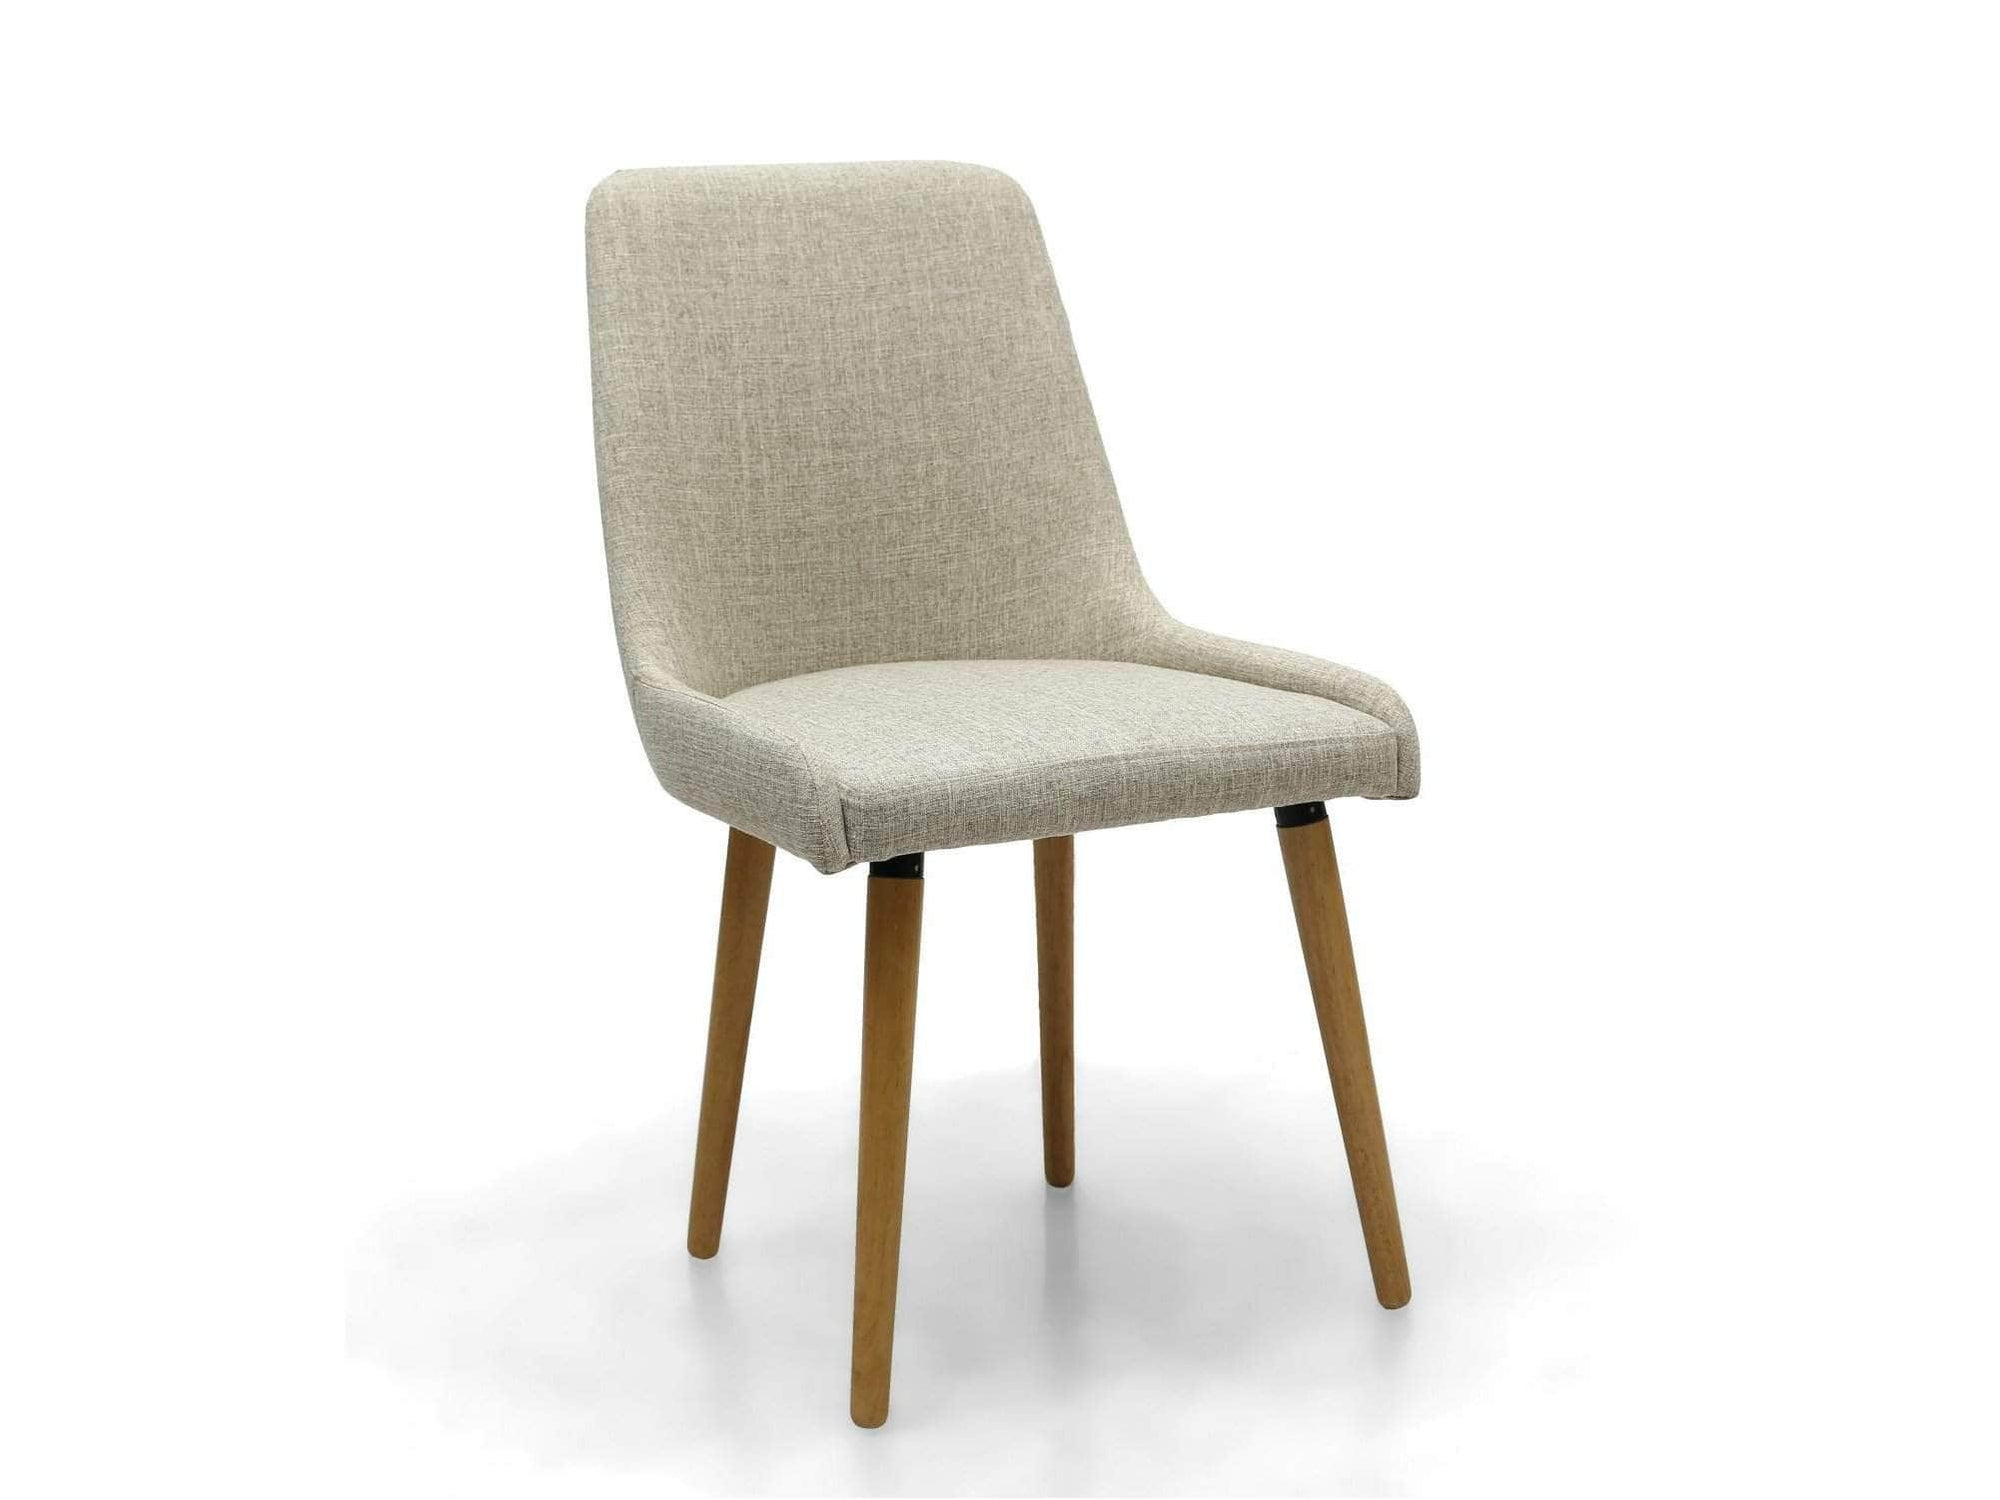 Scandi linen-upholstered dining chair with natural rubber wood legs